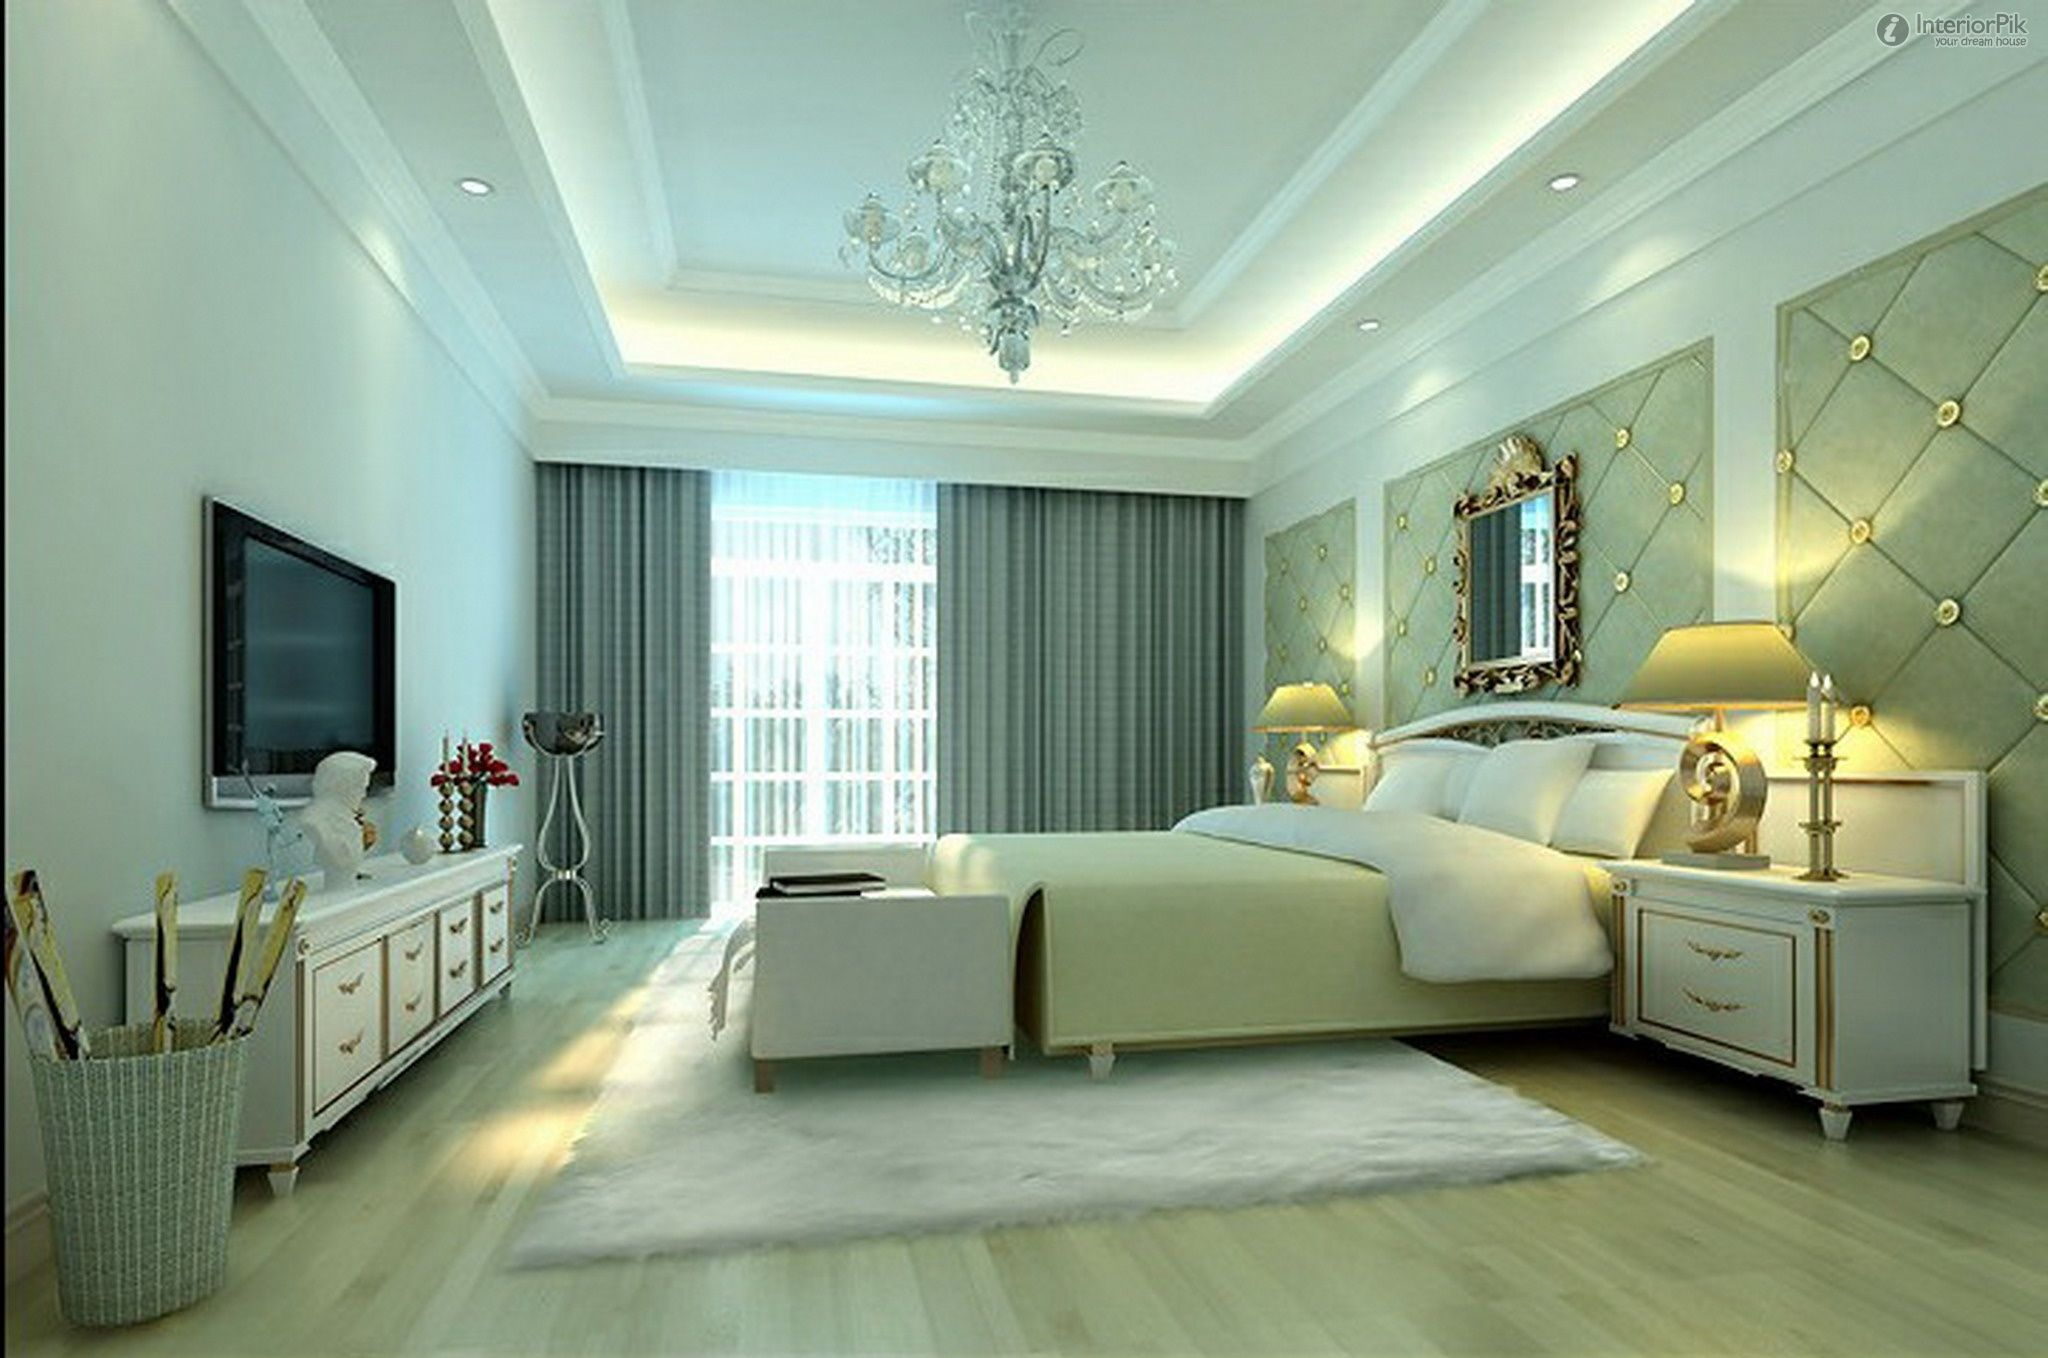 False ceiling with lights for bedroom with flat screen TV | Home ...